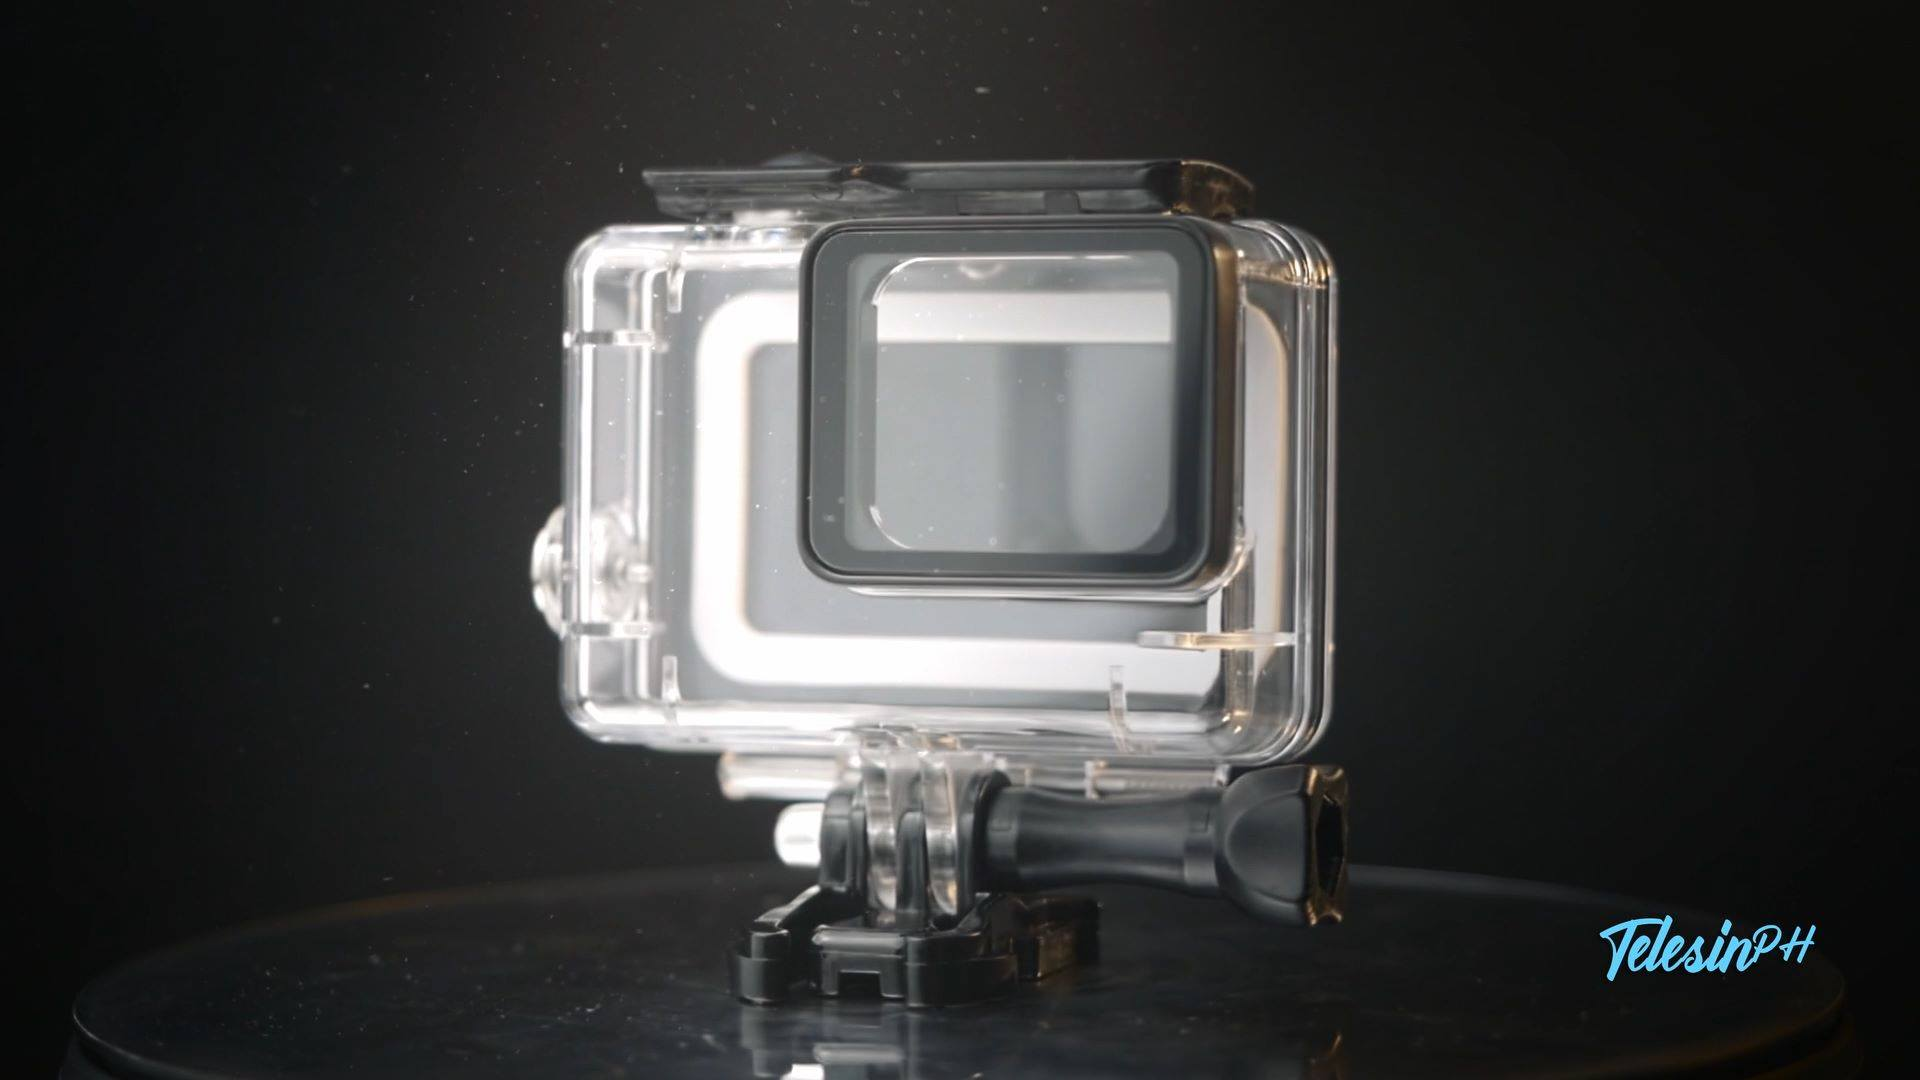 Waterproof case specially designed for the latest GoPro Hero 5, Hero 6, and Hero 7